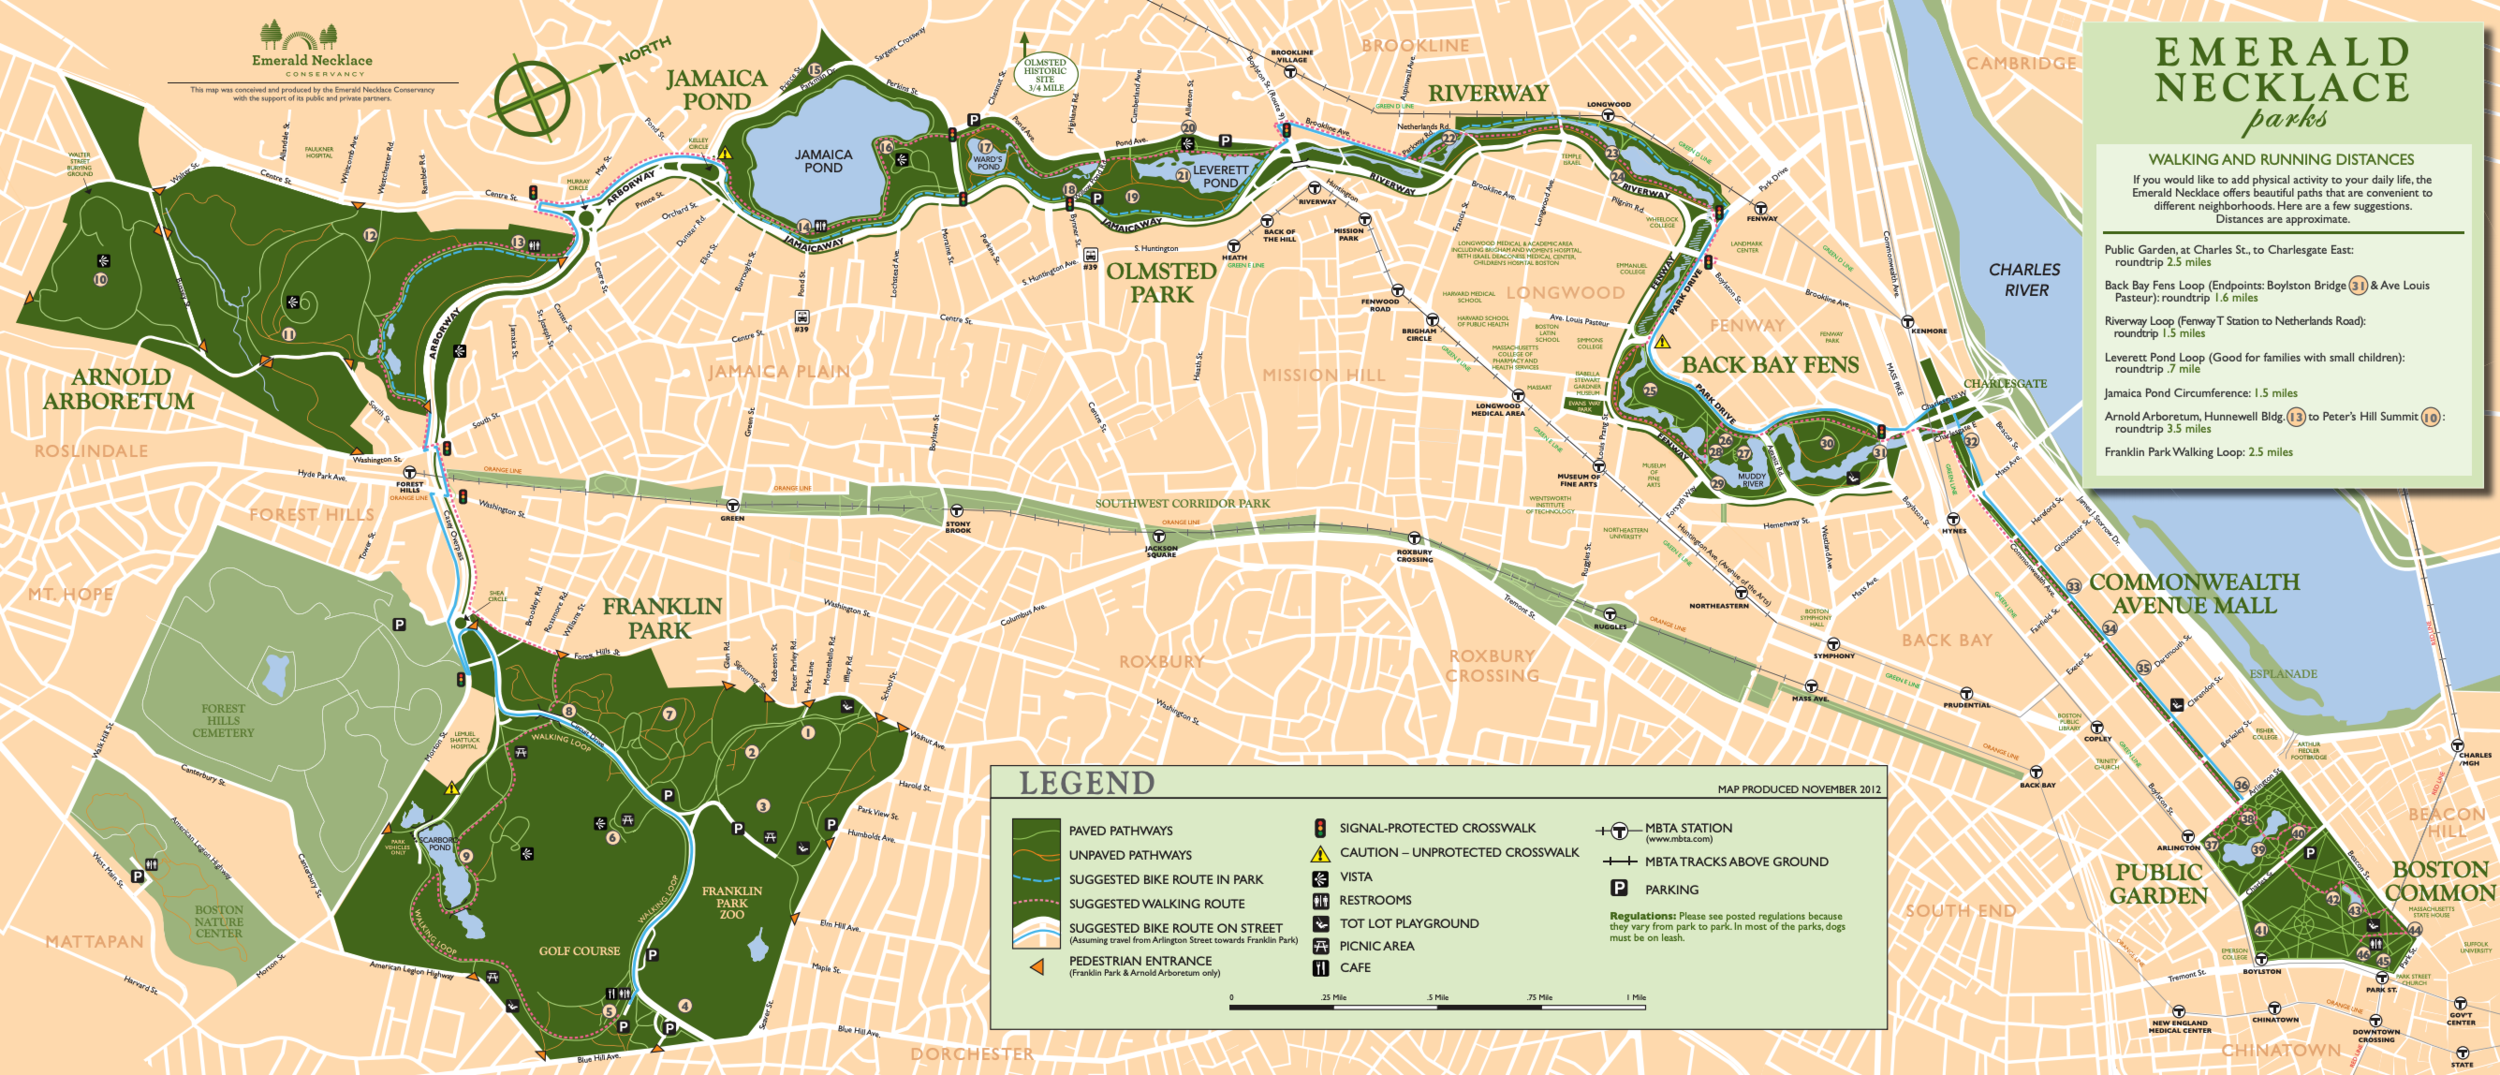 Map Courtesy Emerald Necklace Conservancy